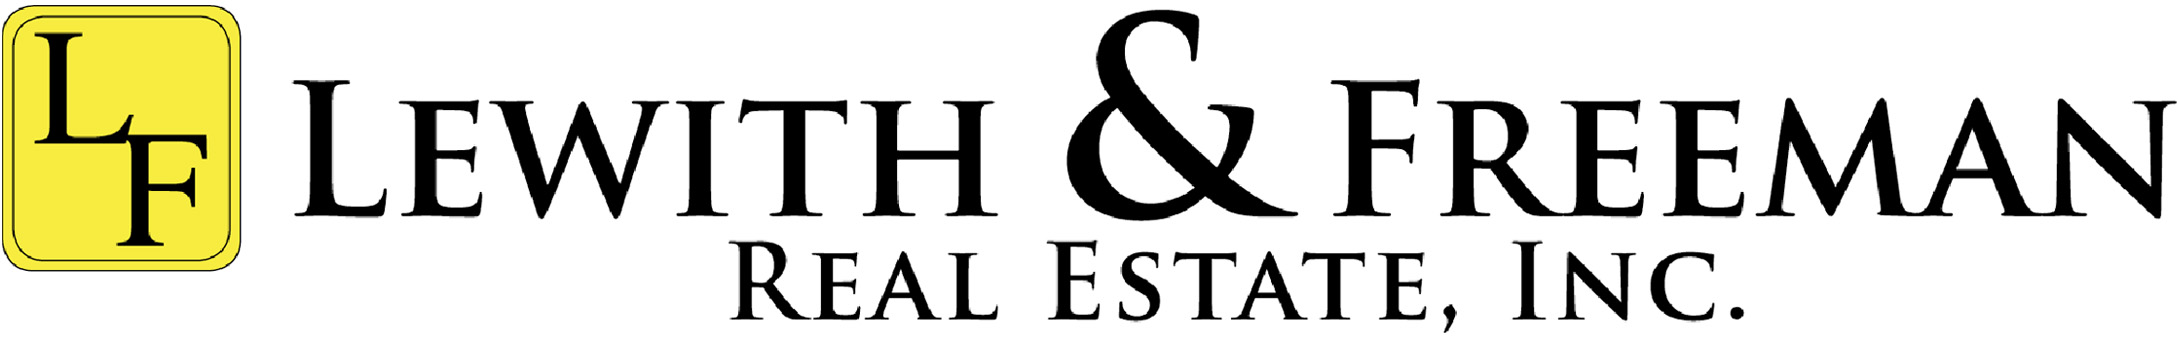 Lewith and Freeman Real Estate, Inc